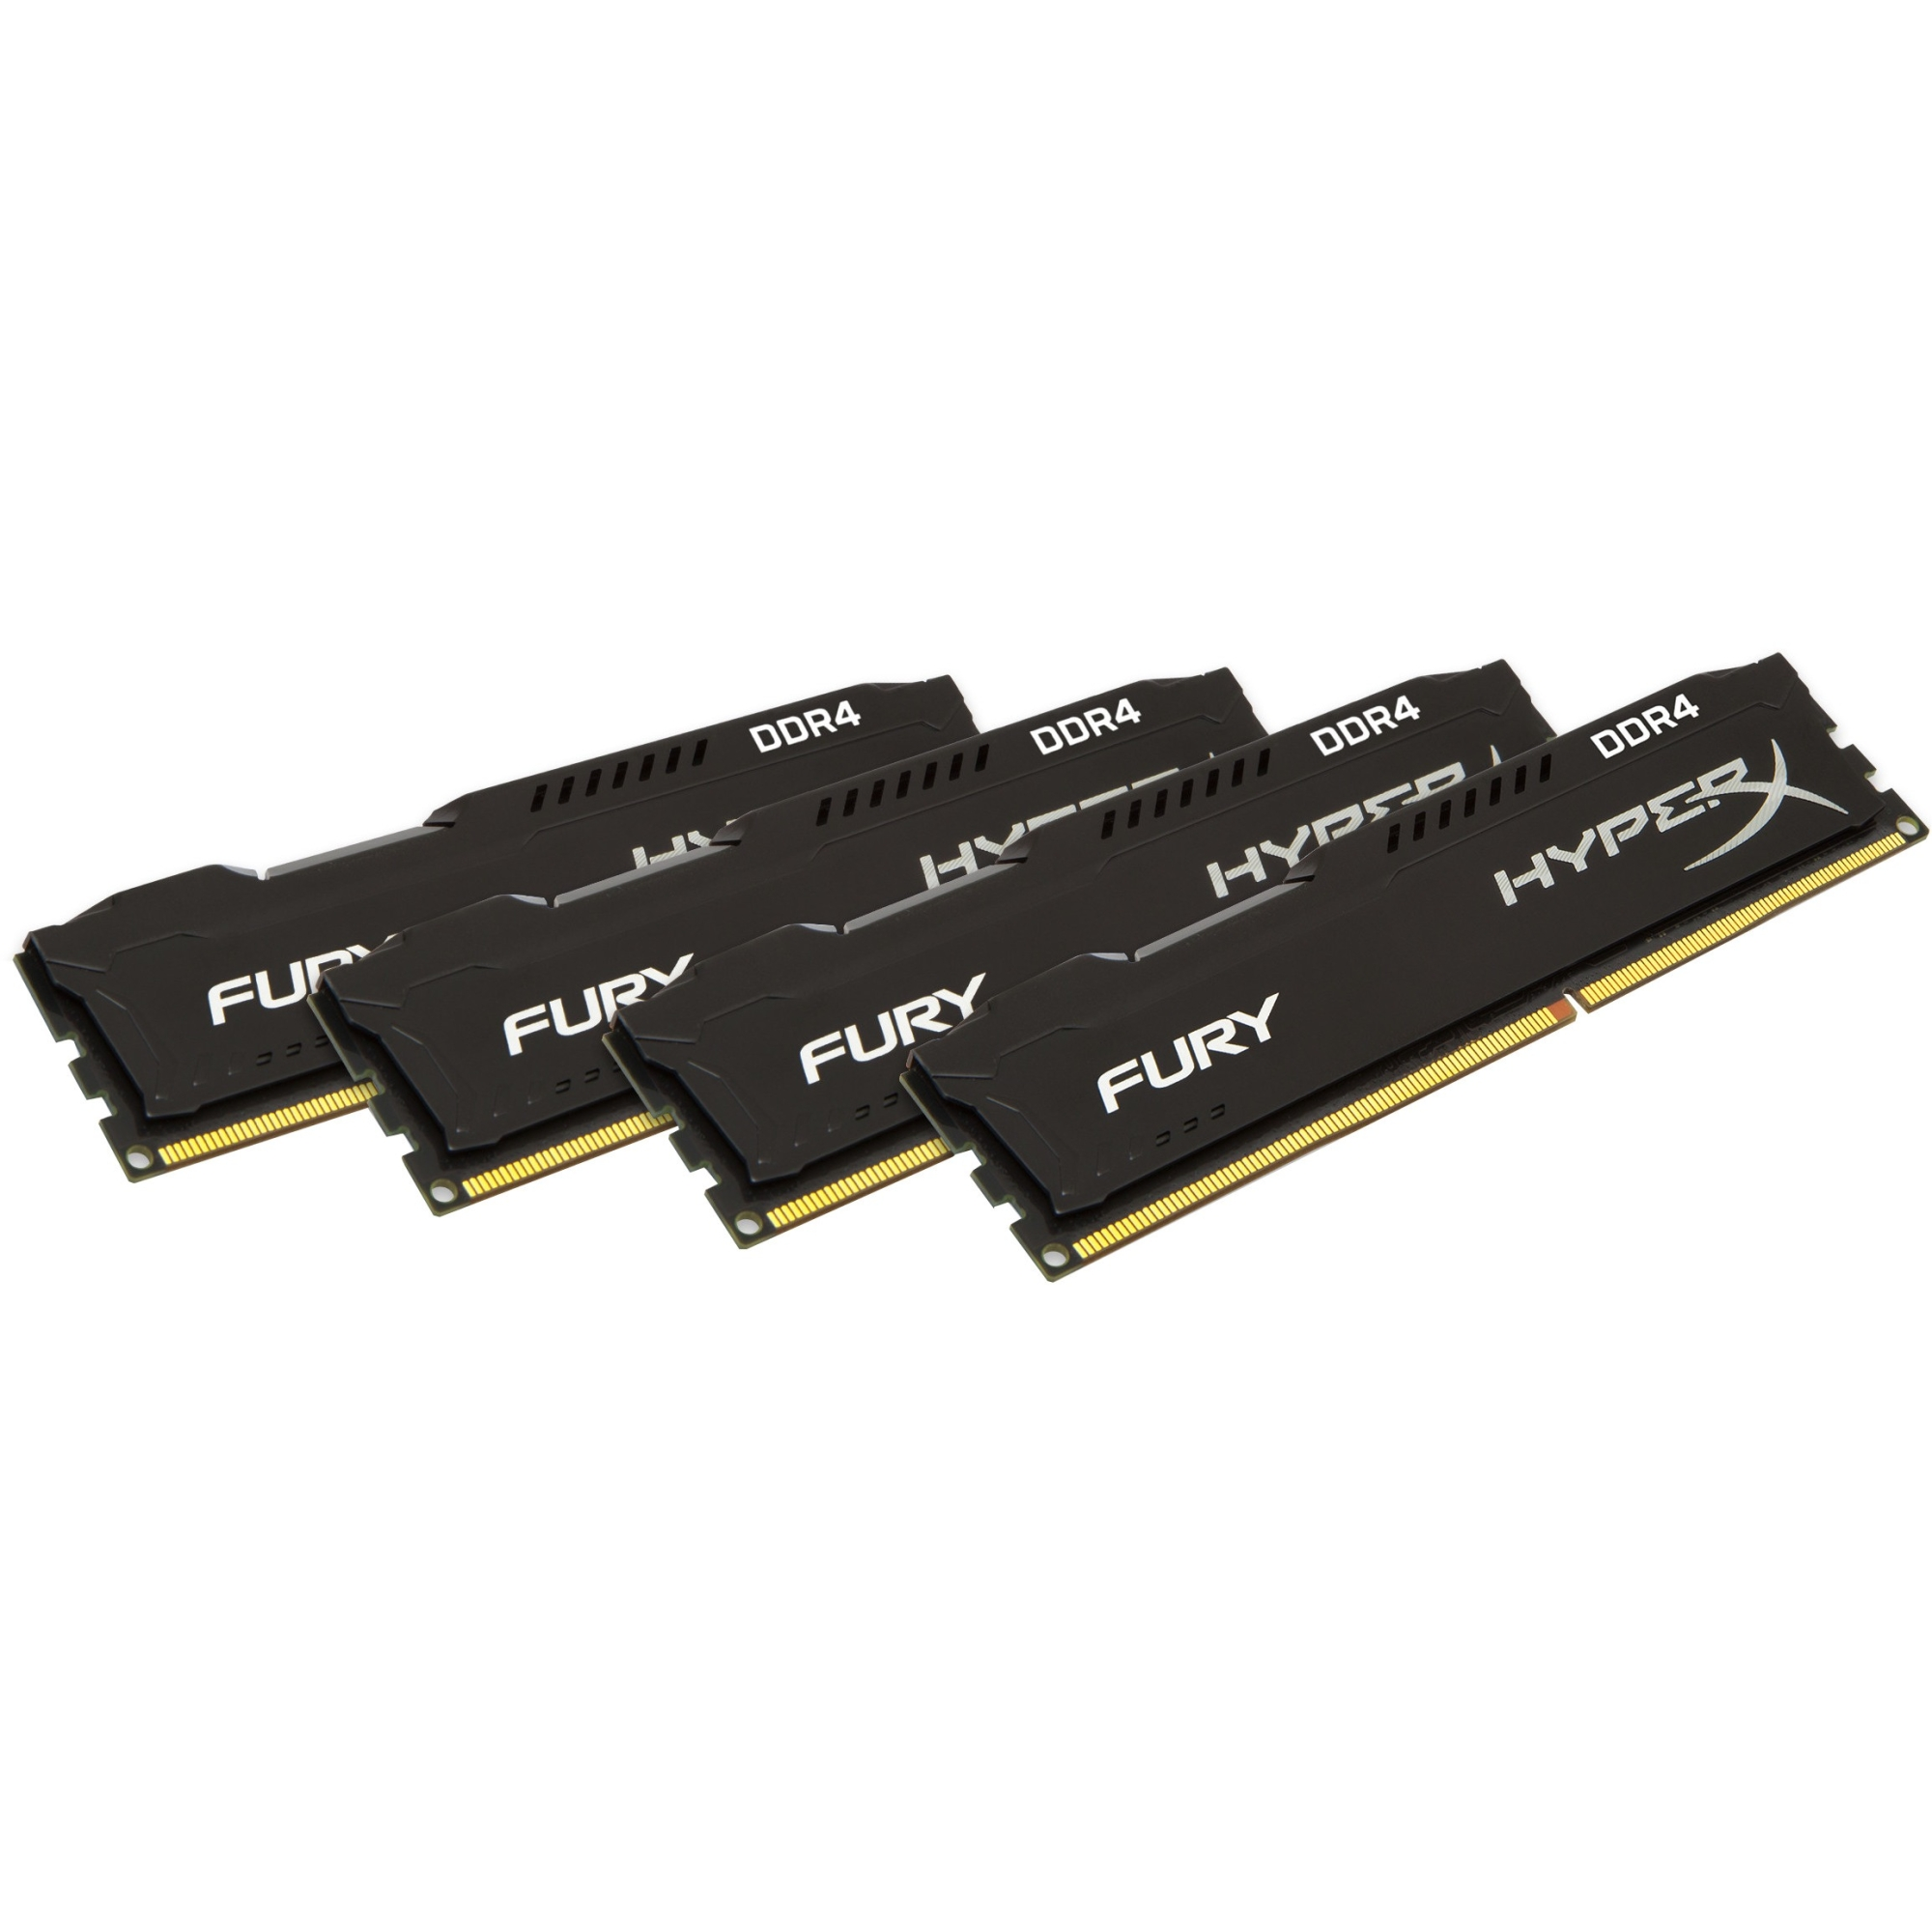 Kingston FURY Memory Black - 32GB Kit(4x8GB) - DDR4 2133MHz CL14 DIMM - 32 GB (4 x 8 GB) - DDR4 SDRAM - 2133 MHz - 1.2